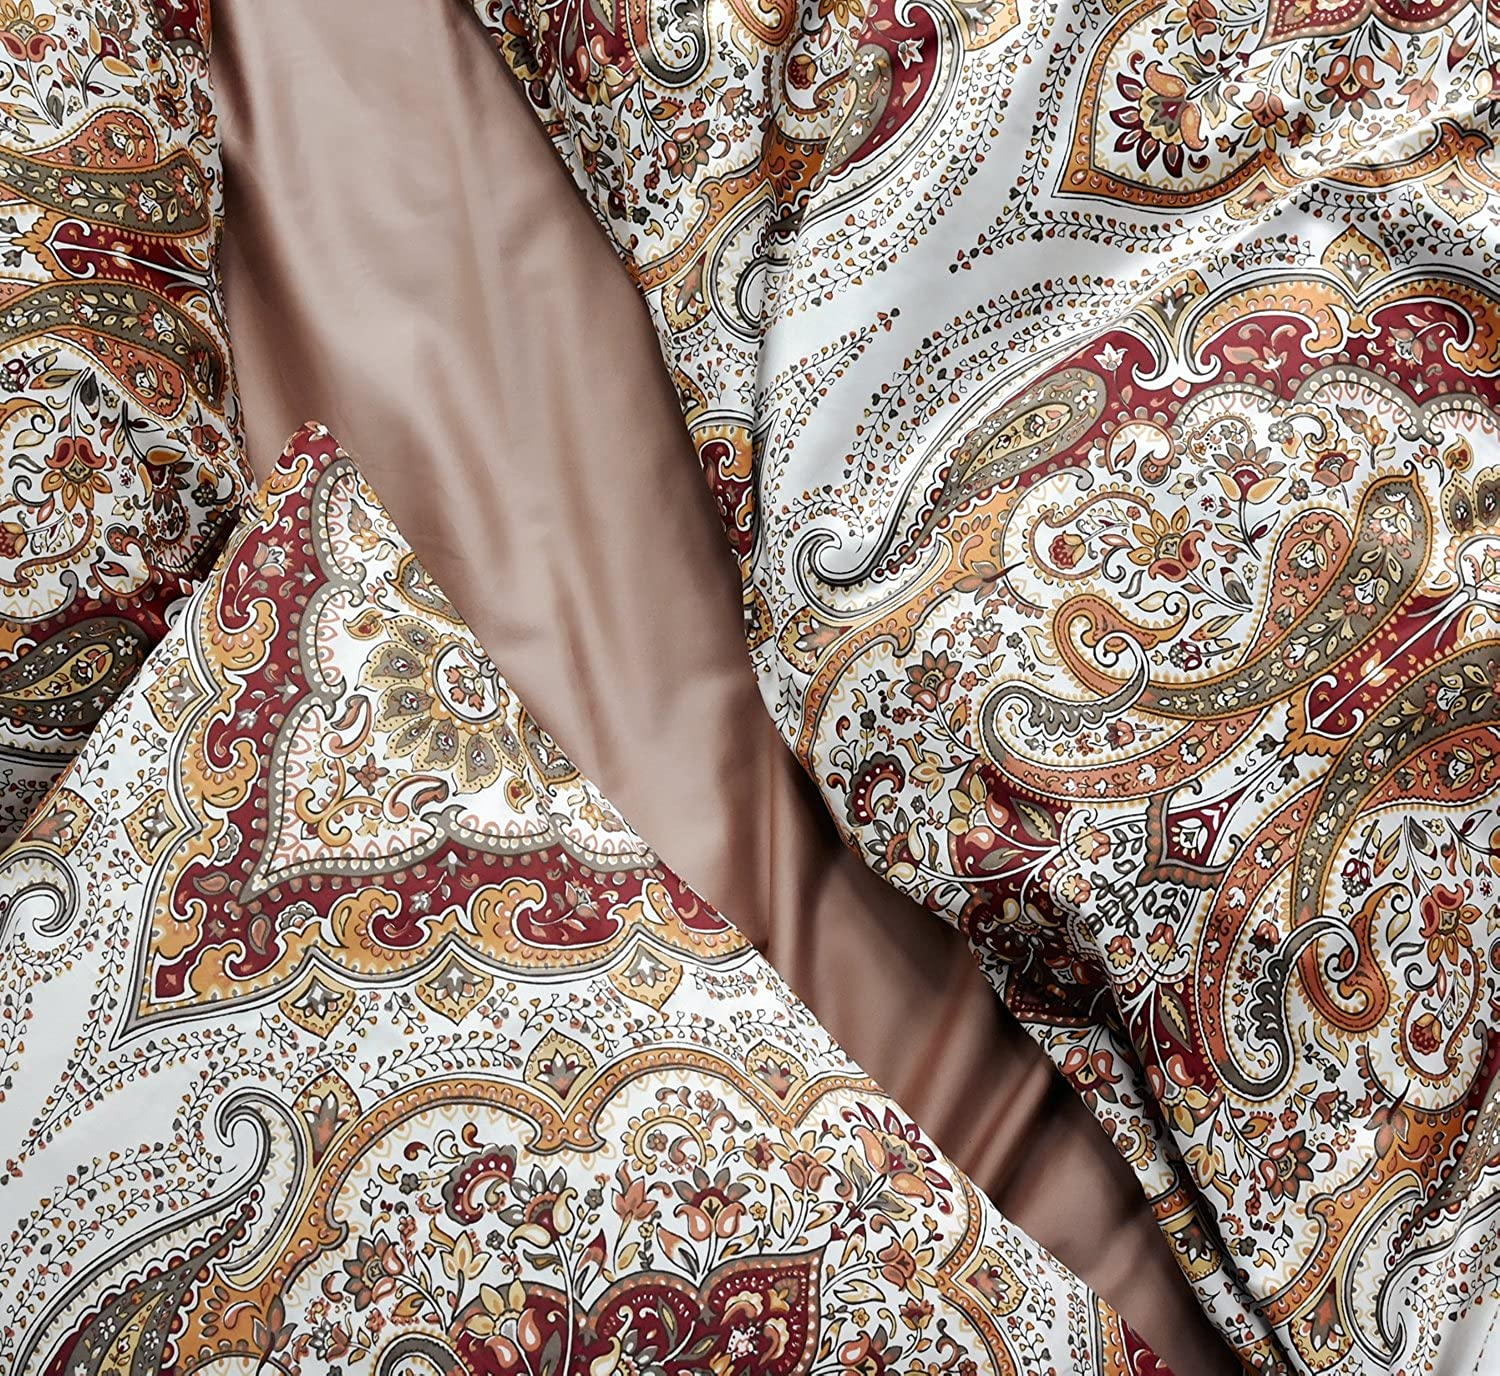 Tahari Home Duvet Quilt Cover Bohemian Style Mgoldccan Paisley Damask Medallion Print Cotton Sateen 3 Piece Bedding Set (King, Rust Copper)